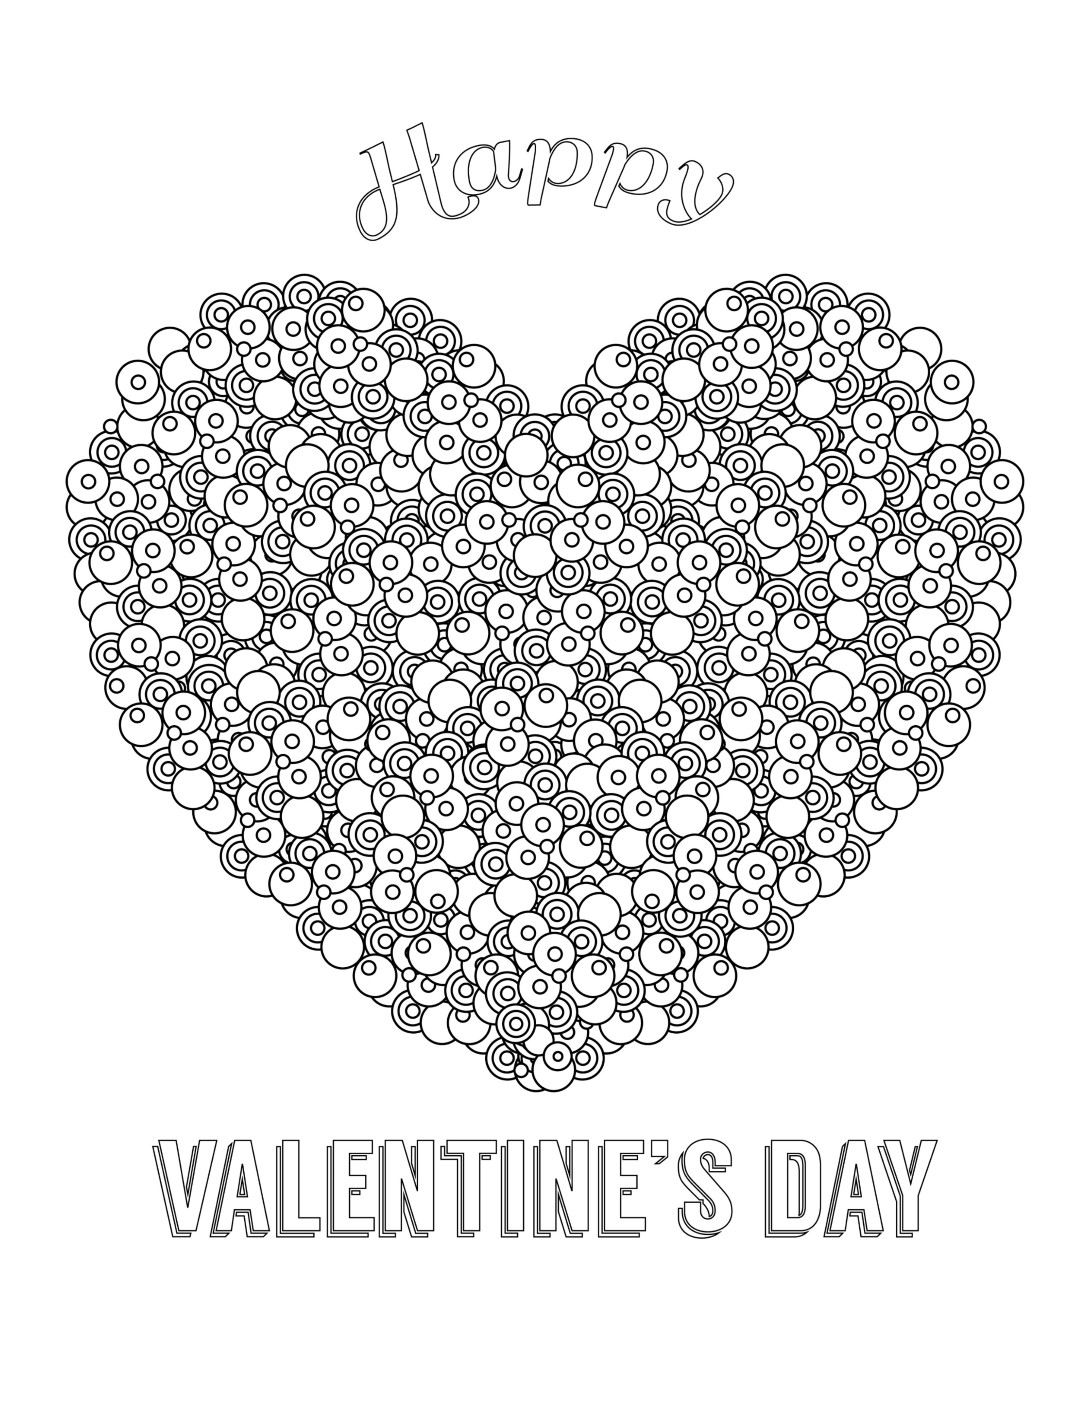 Happy Valentines Day Swirls for Adult Coloring